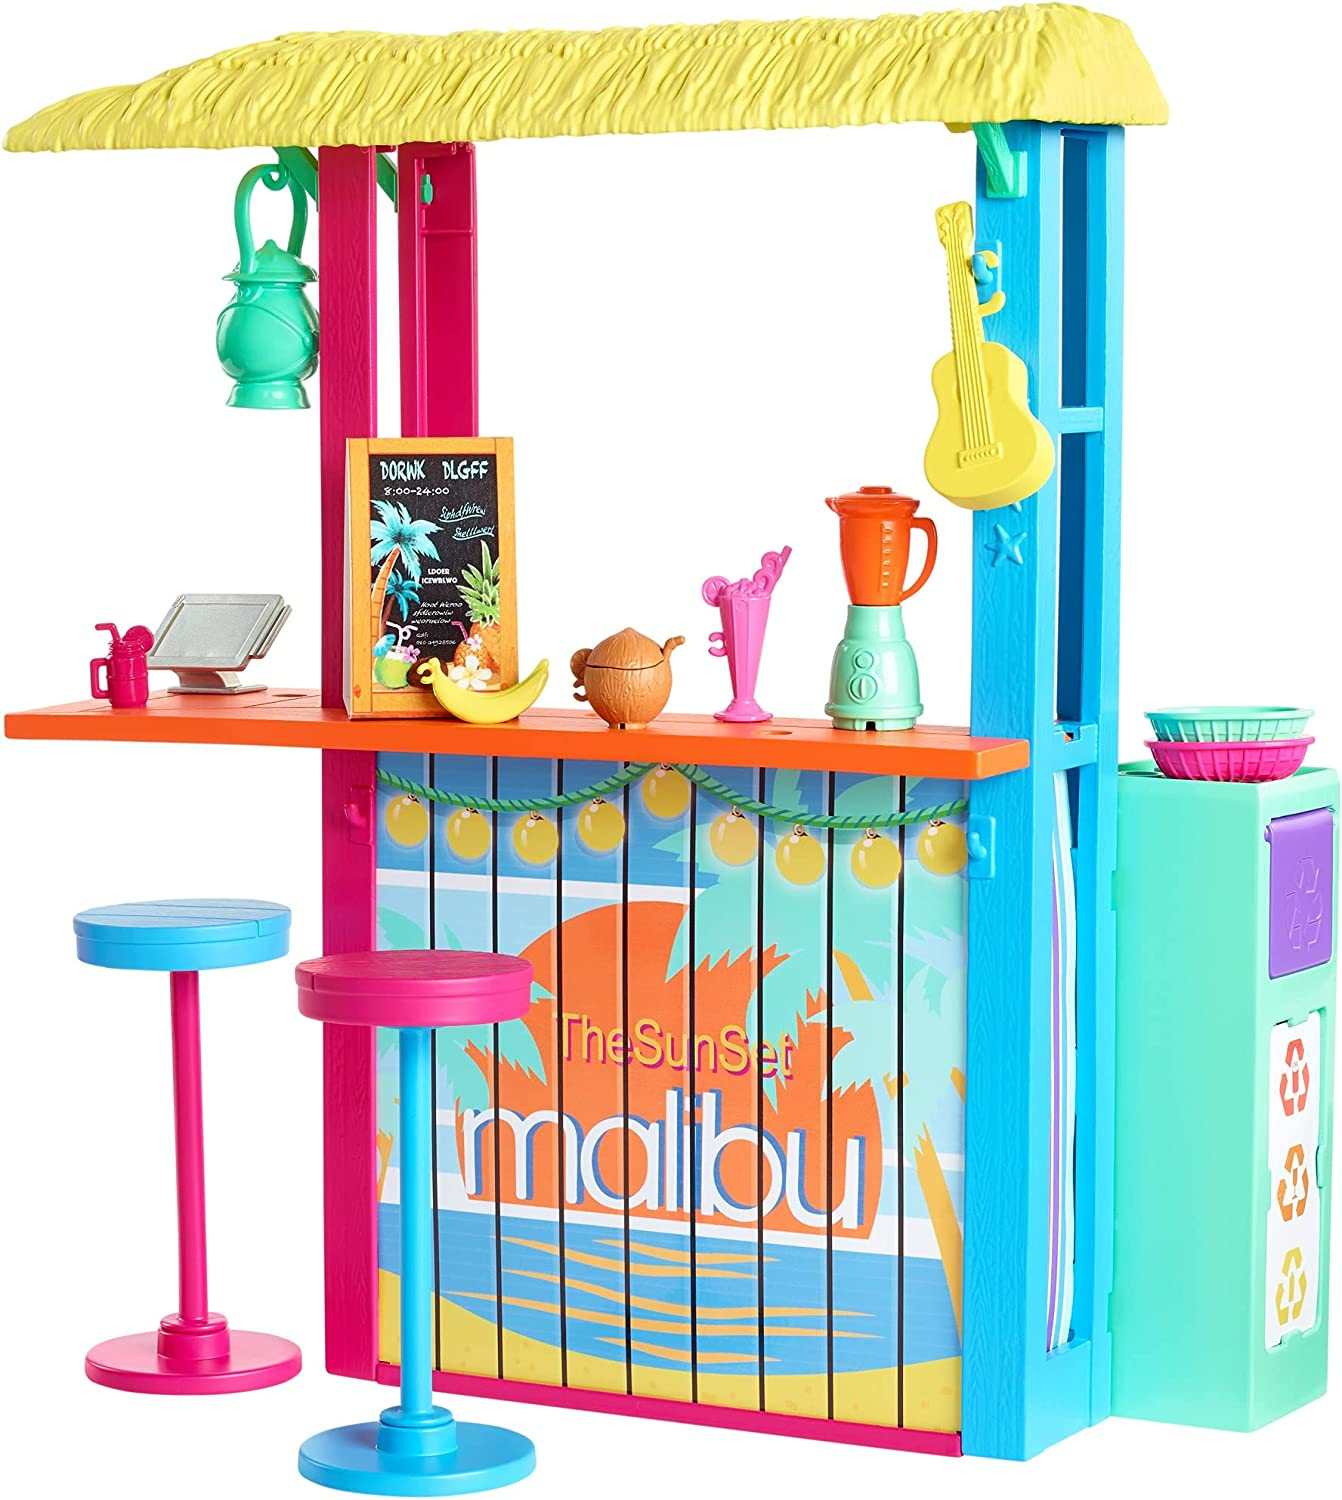 Barbie Loves The Ocean Beach Shack Playset with 18+ Accessories, Made from Recycled Plastics, Gift for 3 to 7 Year Olds